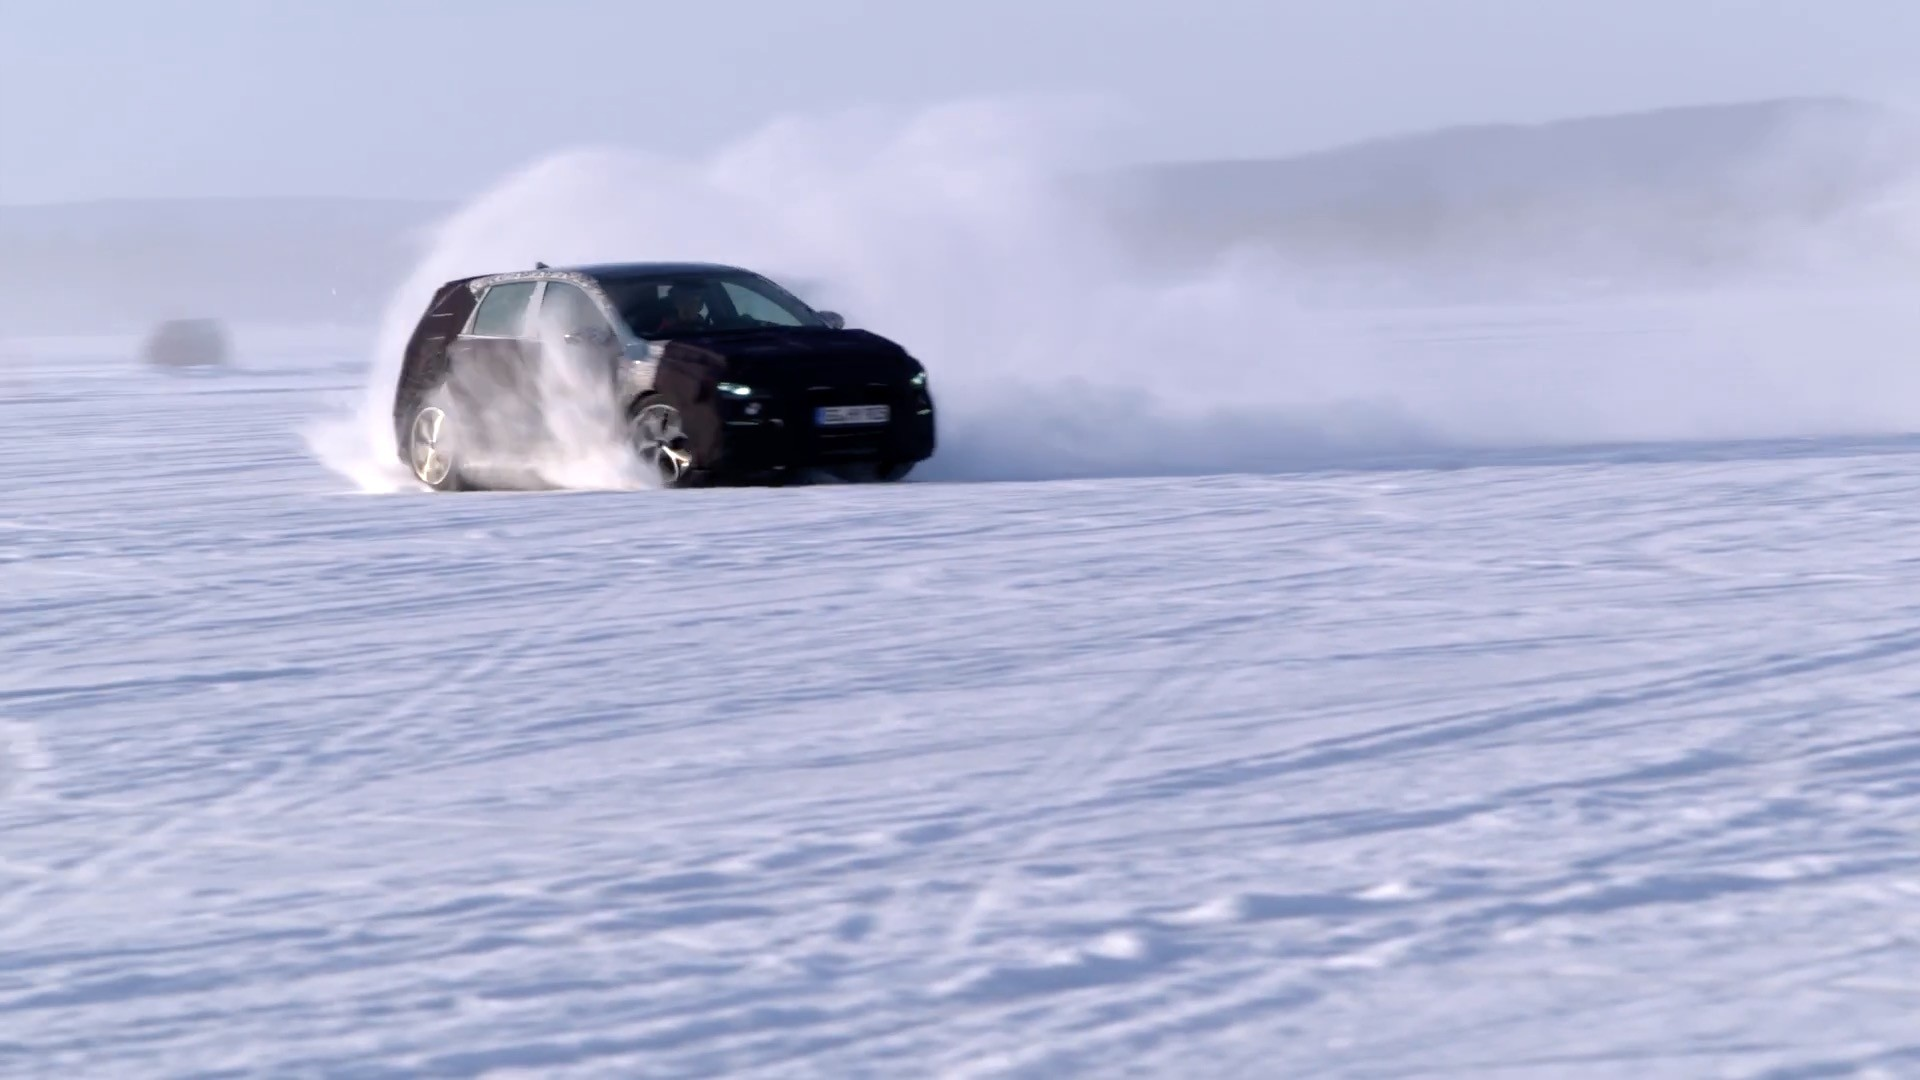 Hyundai puts the i30 n hot hatchback to the test in arctic weather